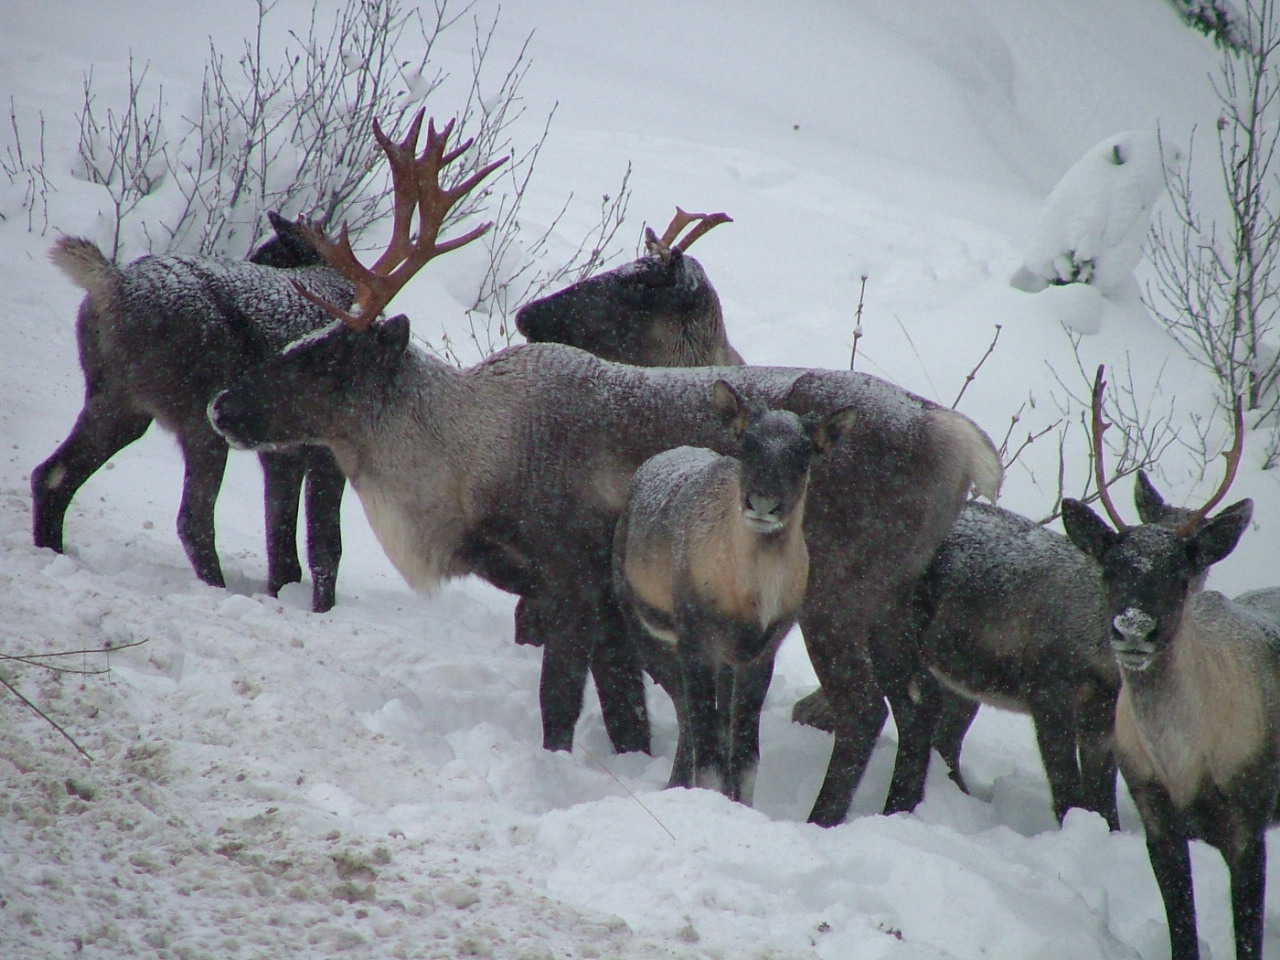 Local environmental group seeks limitations on disruptions to caribou habitat